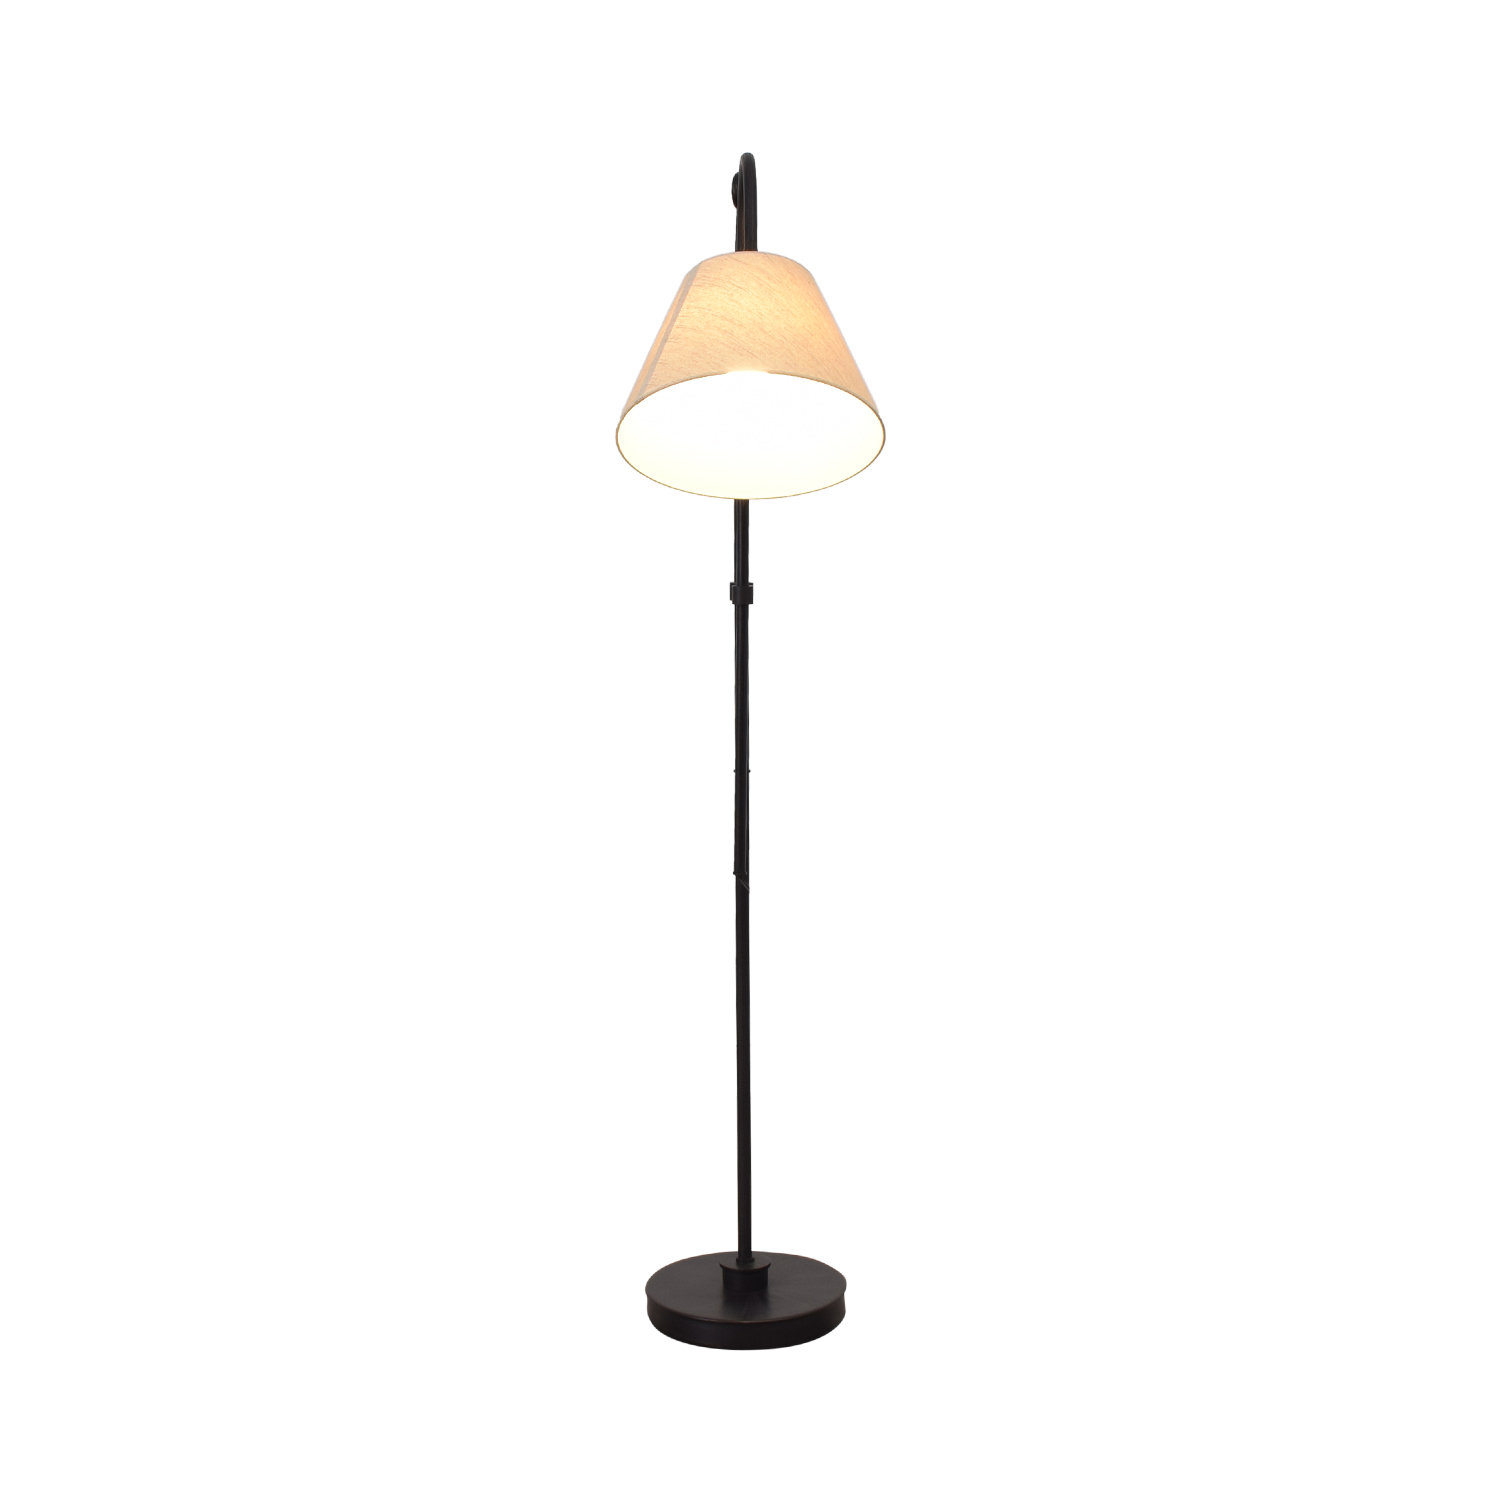 West Elm West Elm Tall Steel Lamp ma